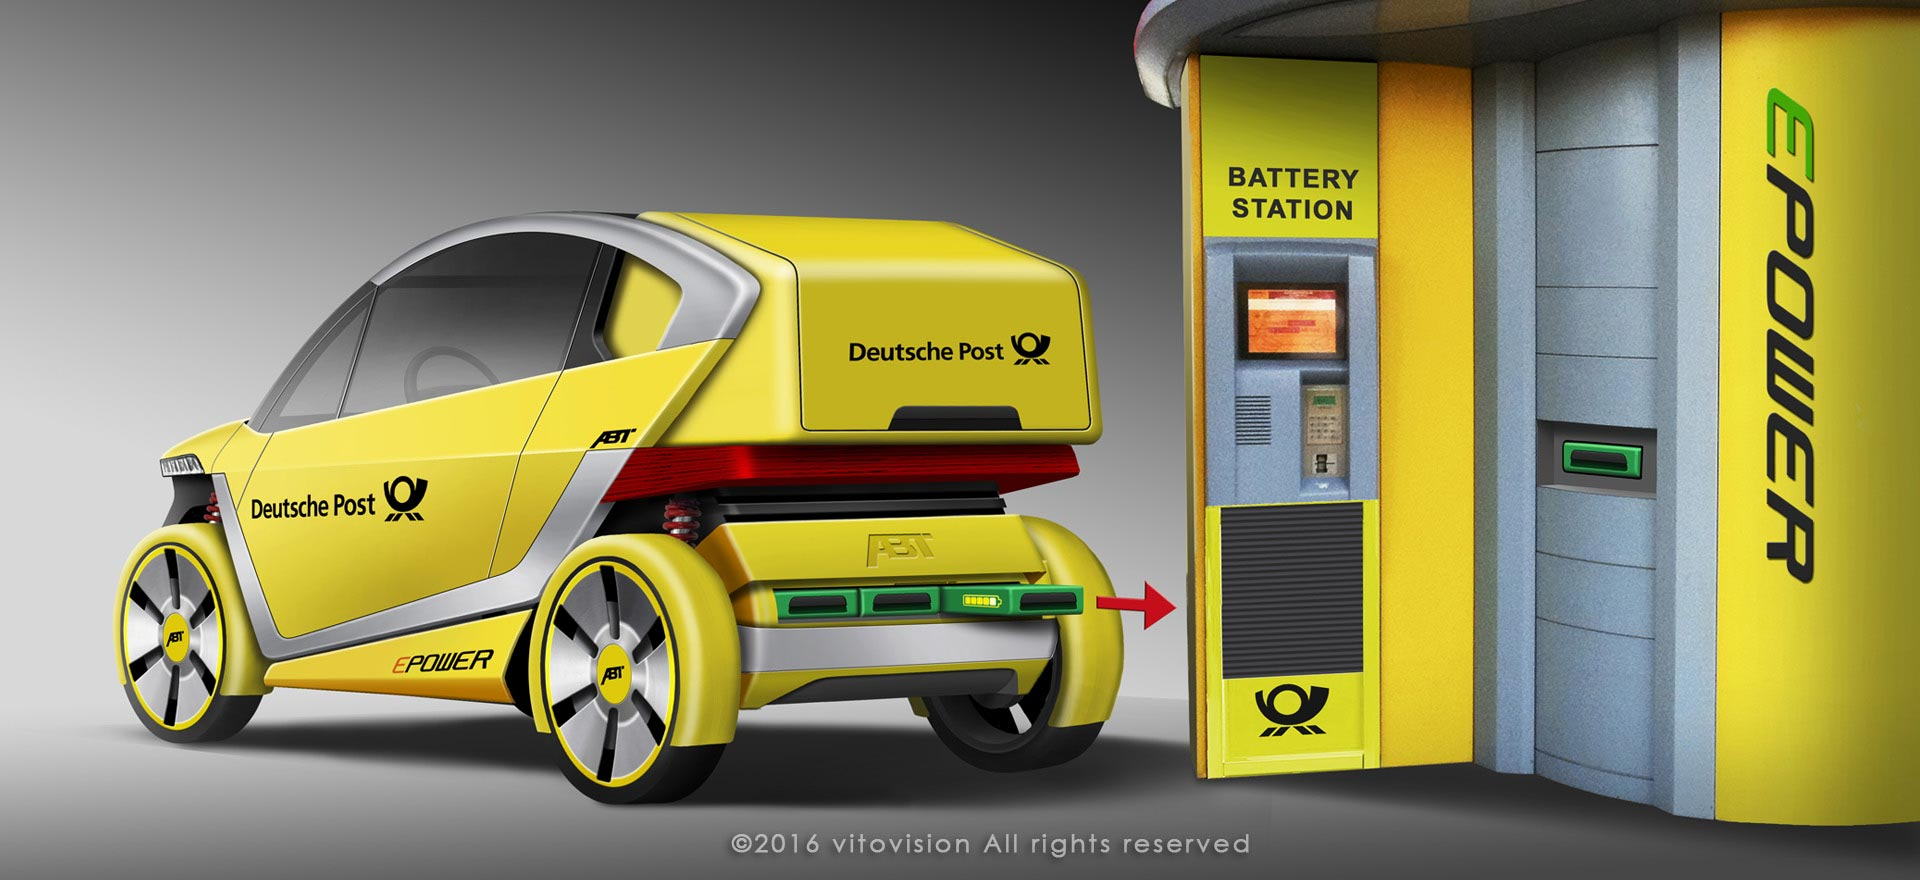 Design for post van of Abt emobility for Deutsche Post